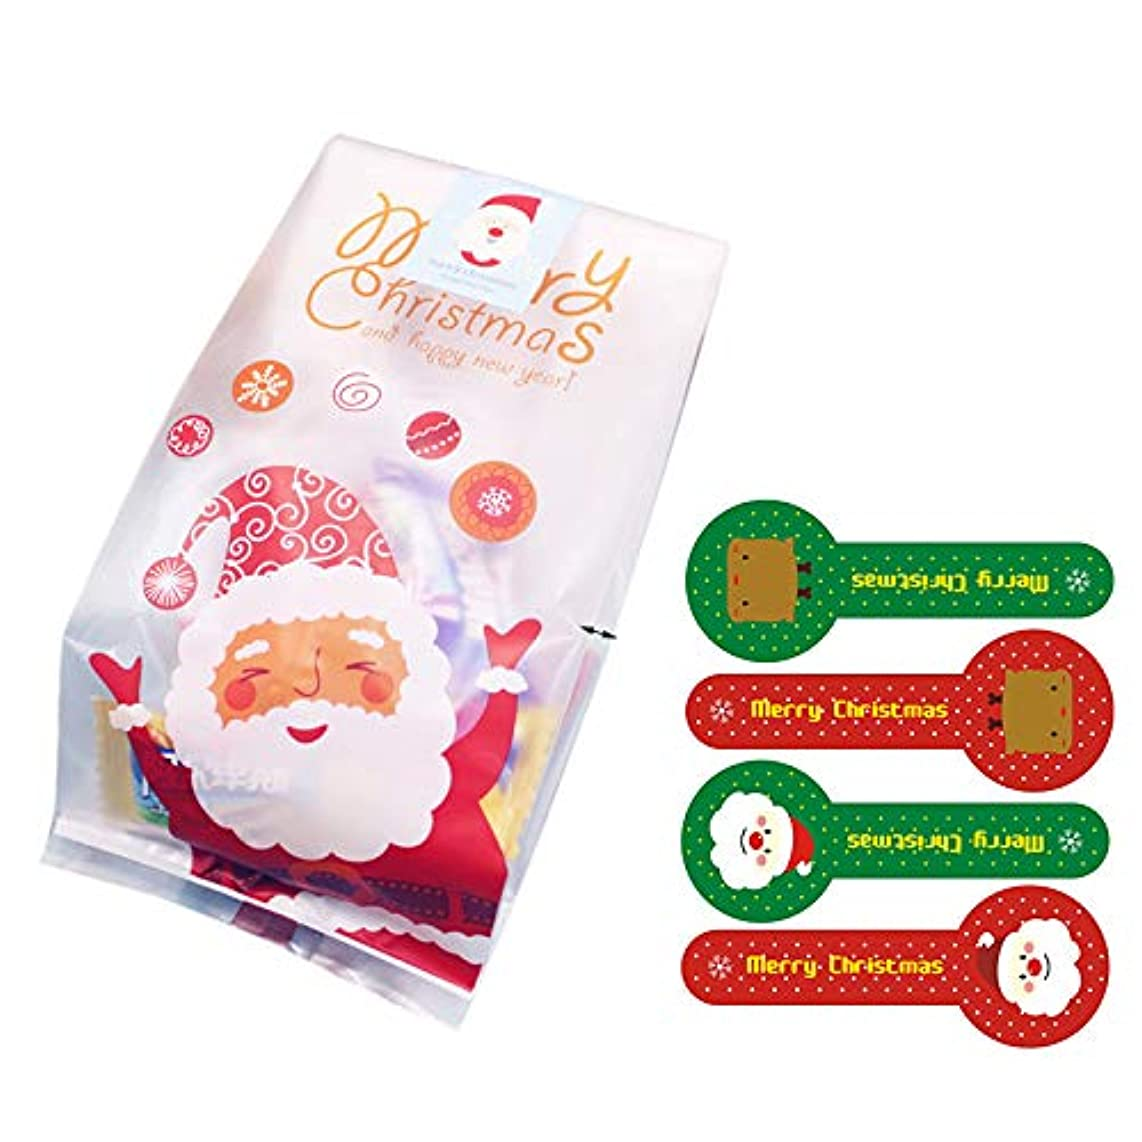 Christmas Treat Bags 50pcs Cellophane Bag for Candy Biscuit Gift Wrap Cellophane Bag with Sealing Stickers